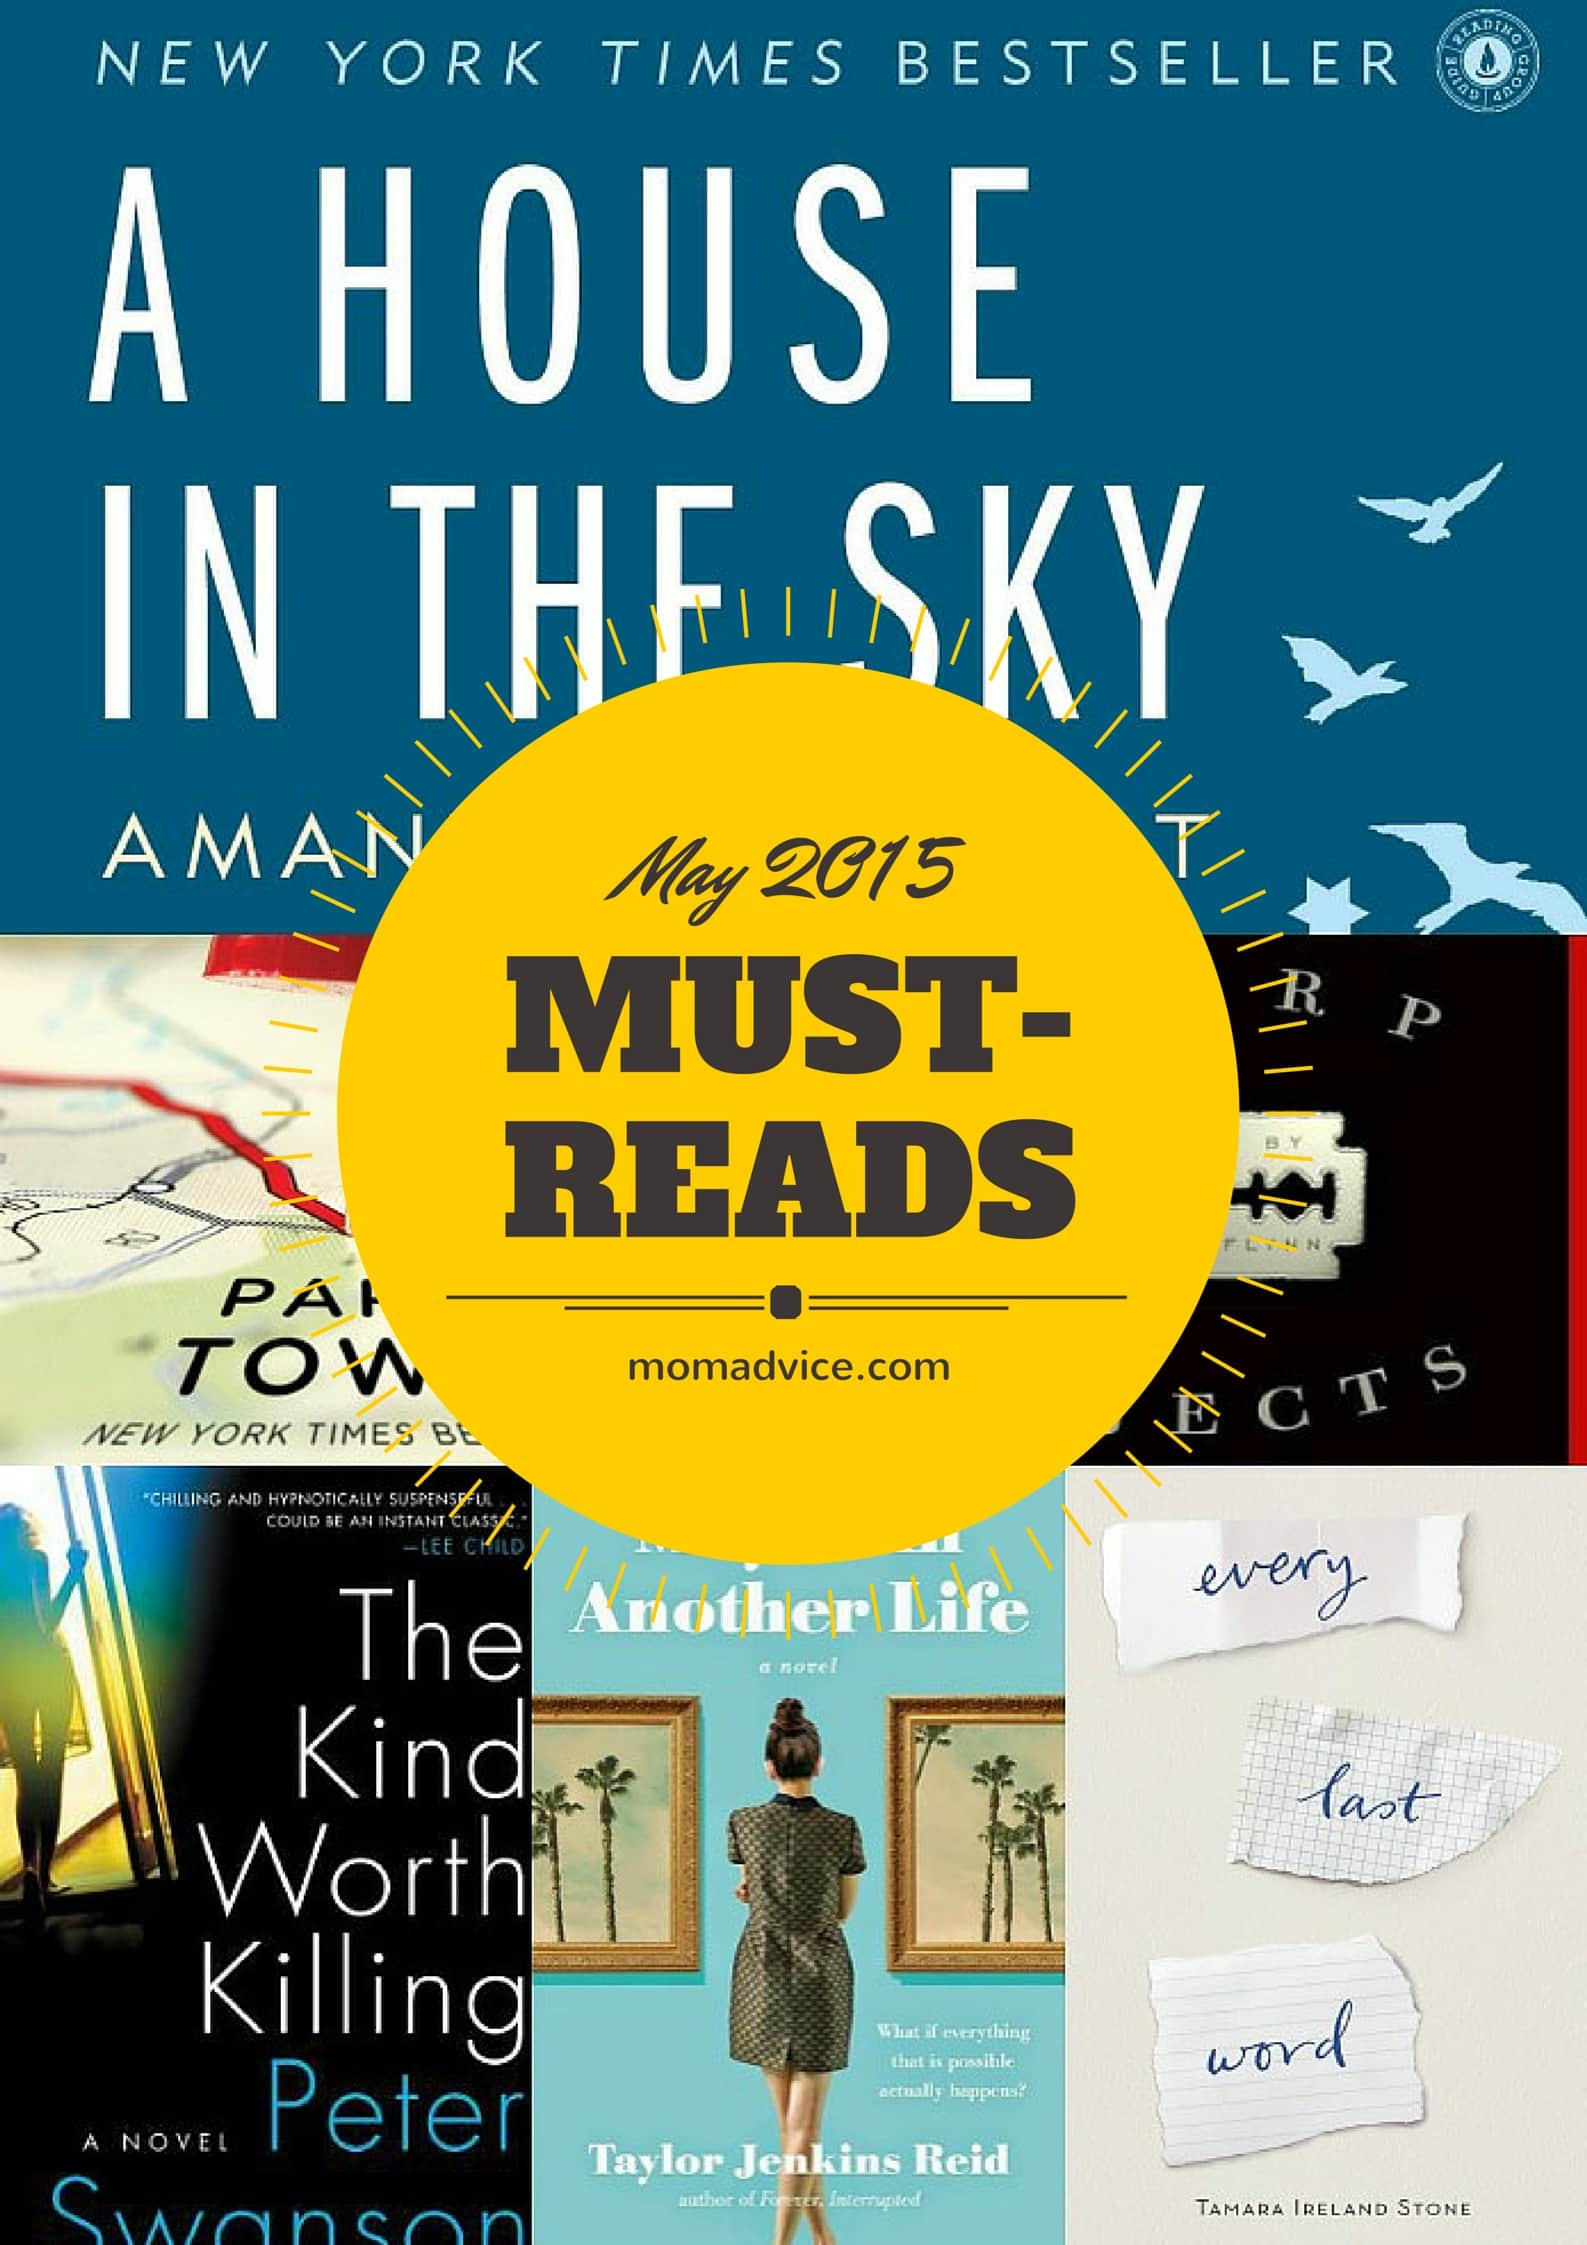 May 2015 Must-Reads